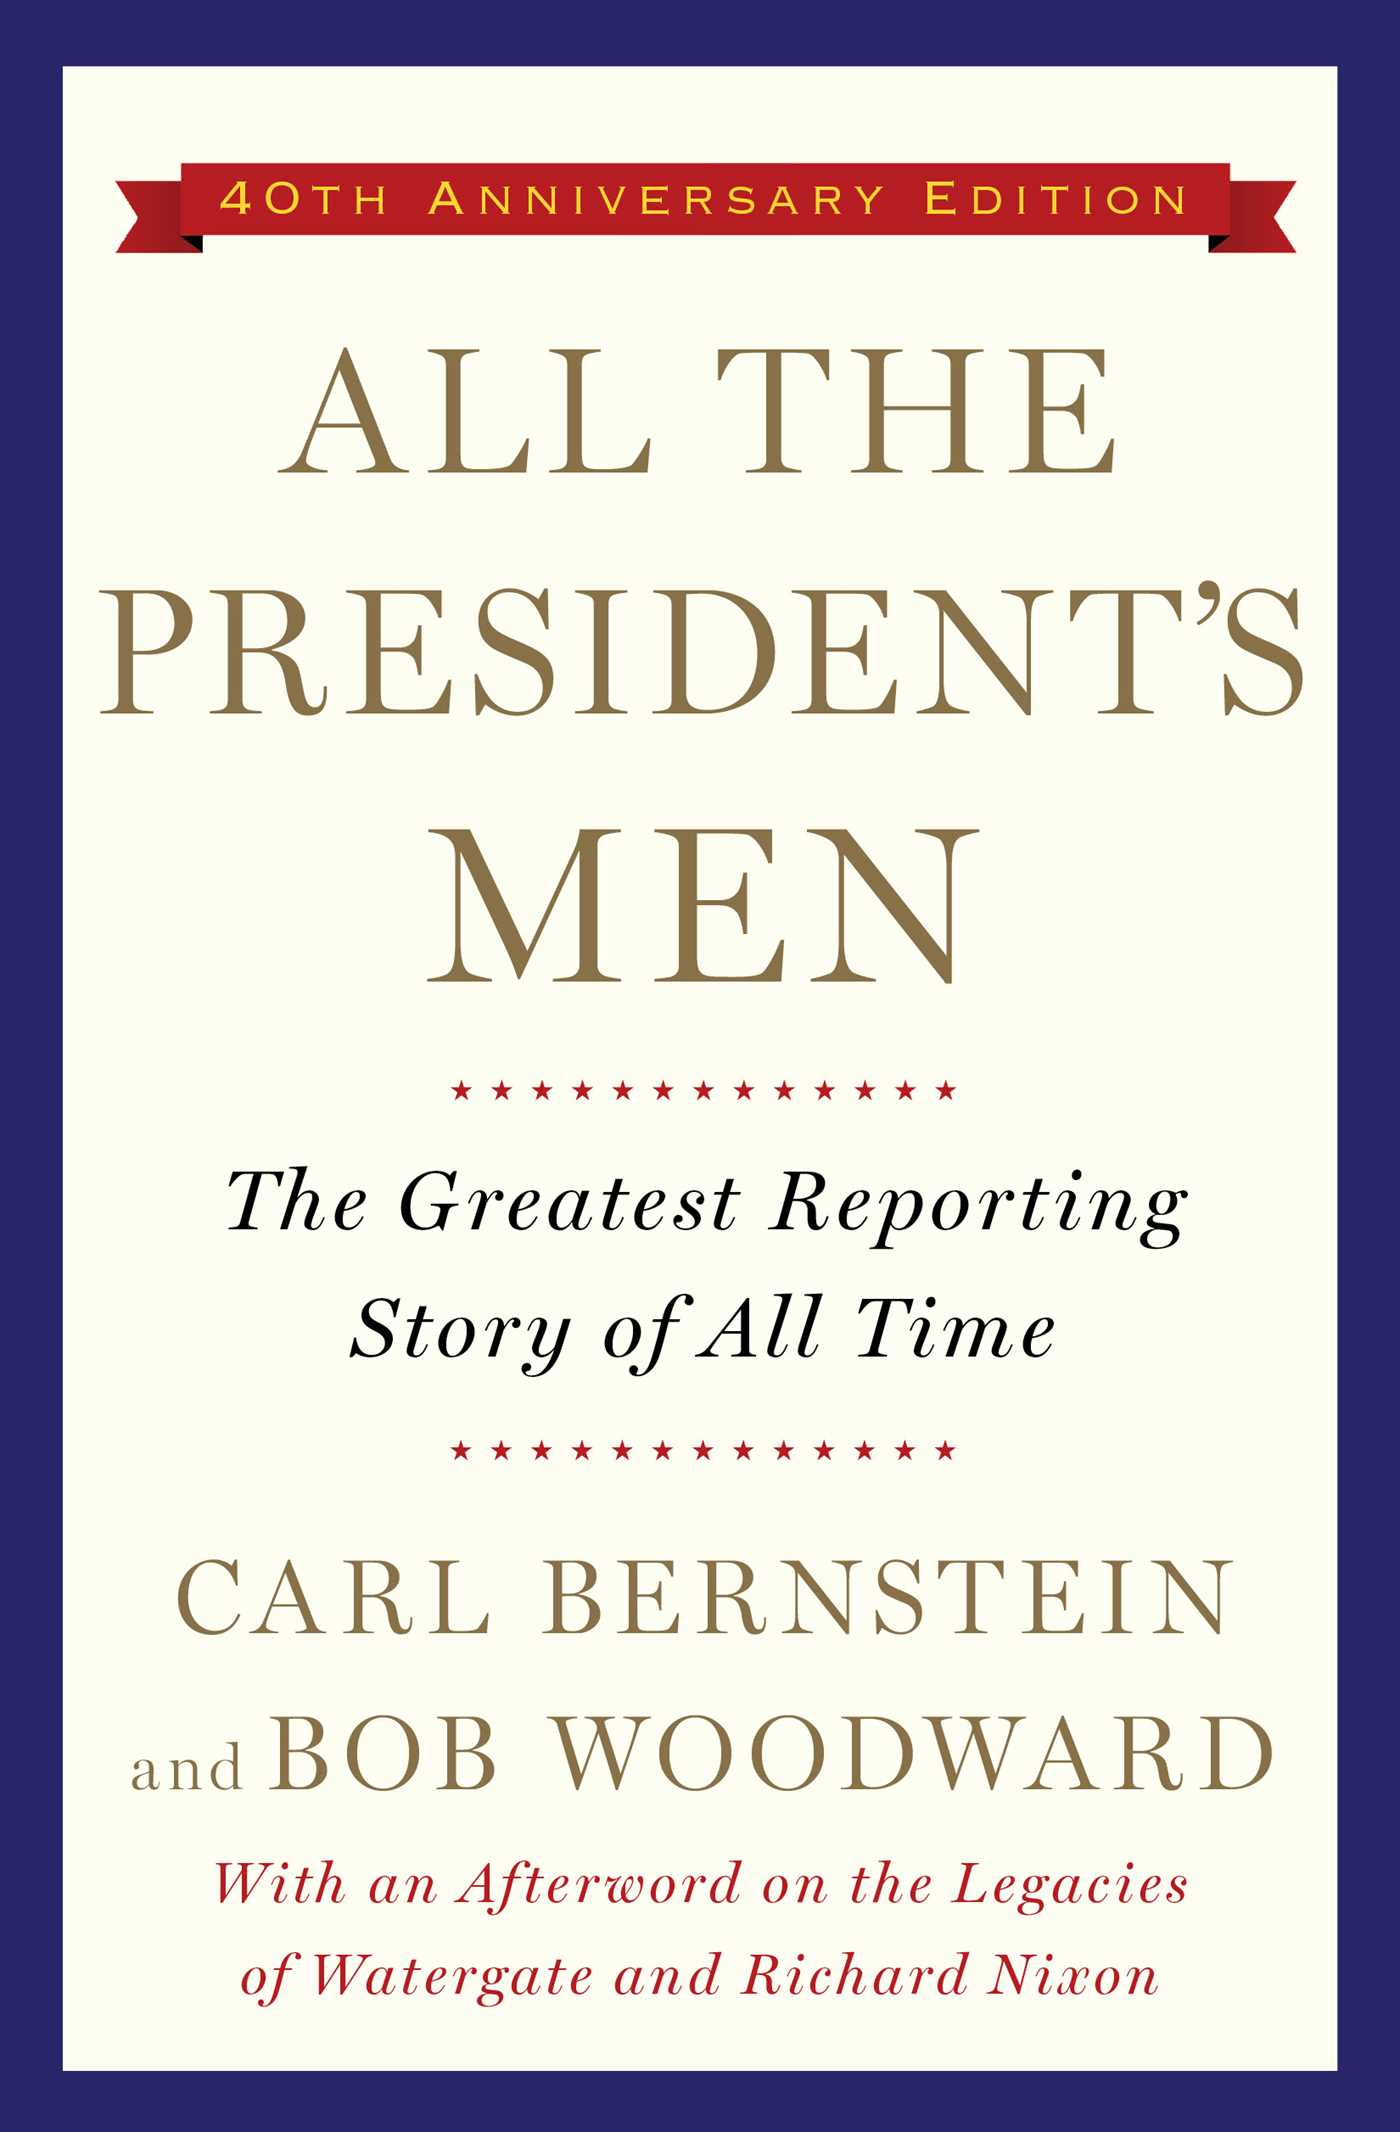 All-the-presidents-men-9781416589501_hr